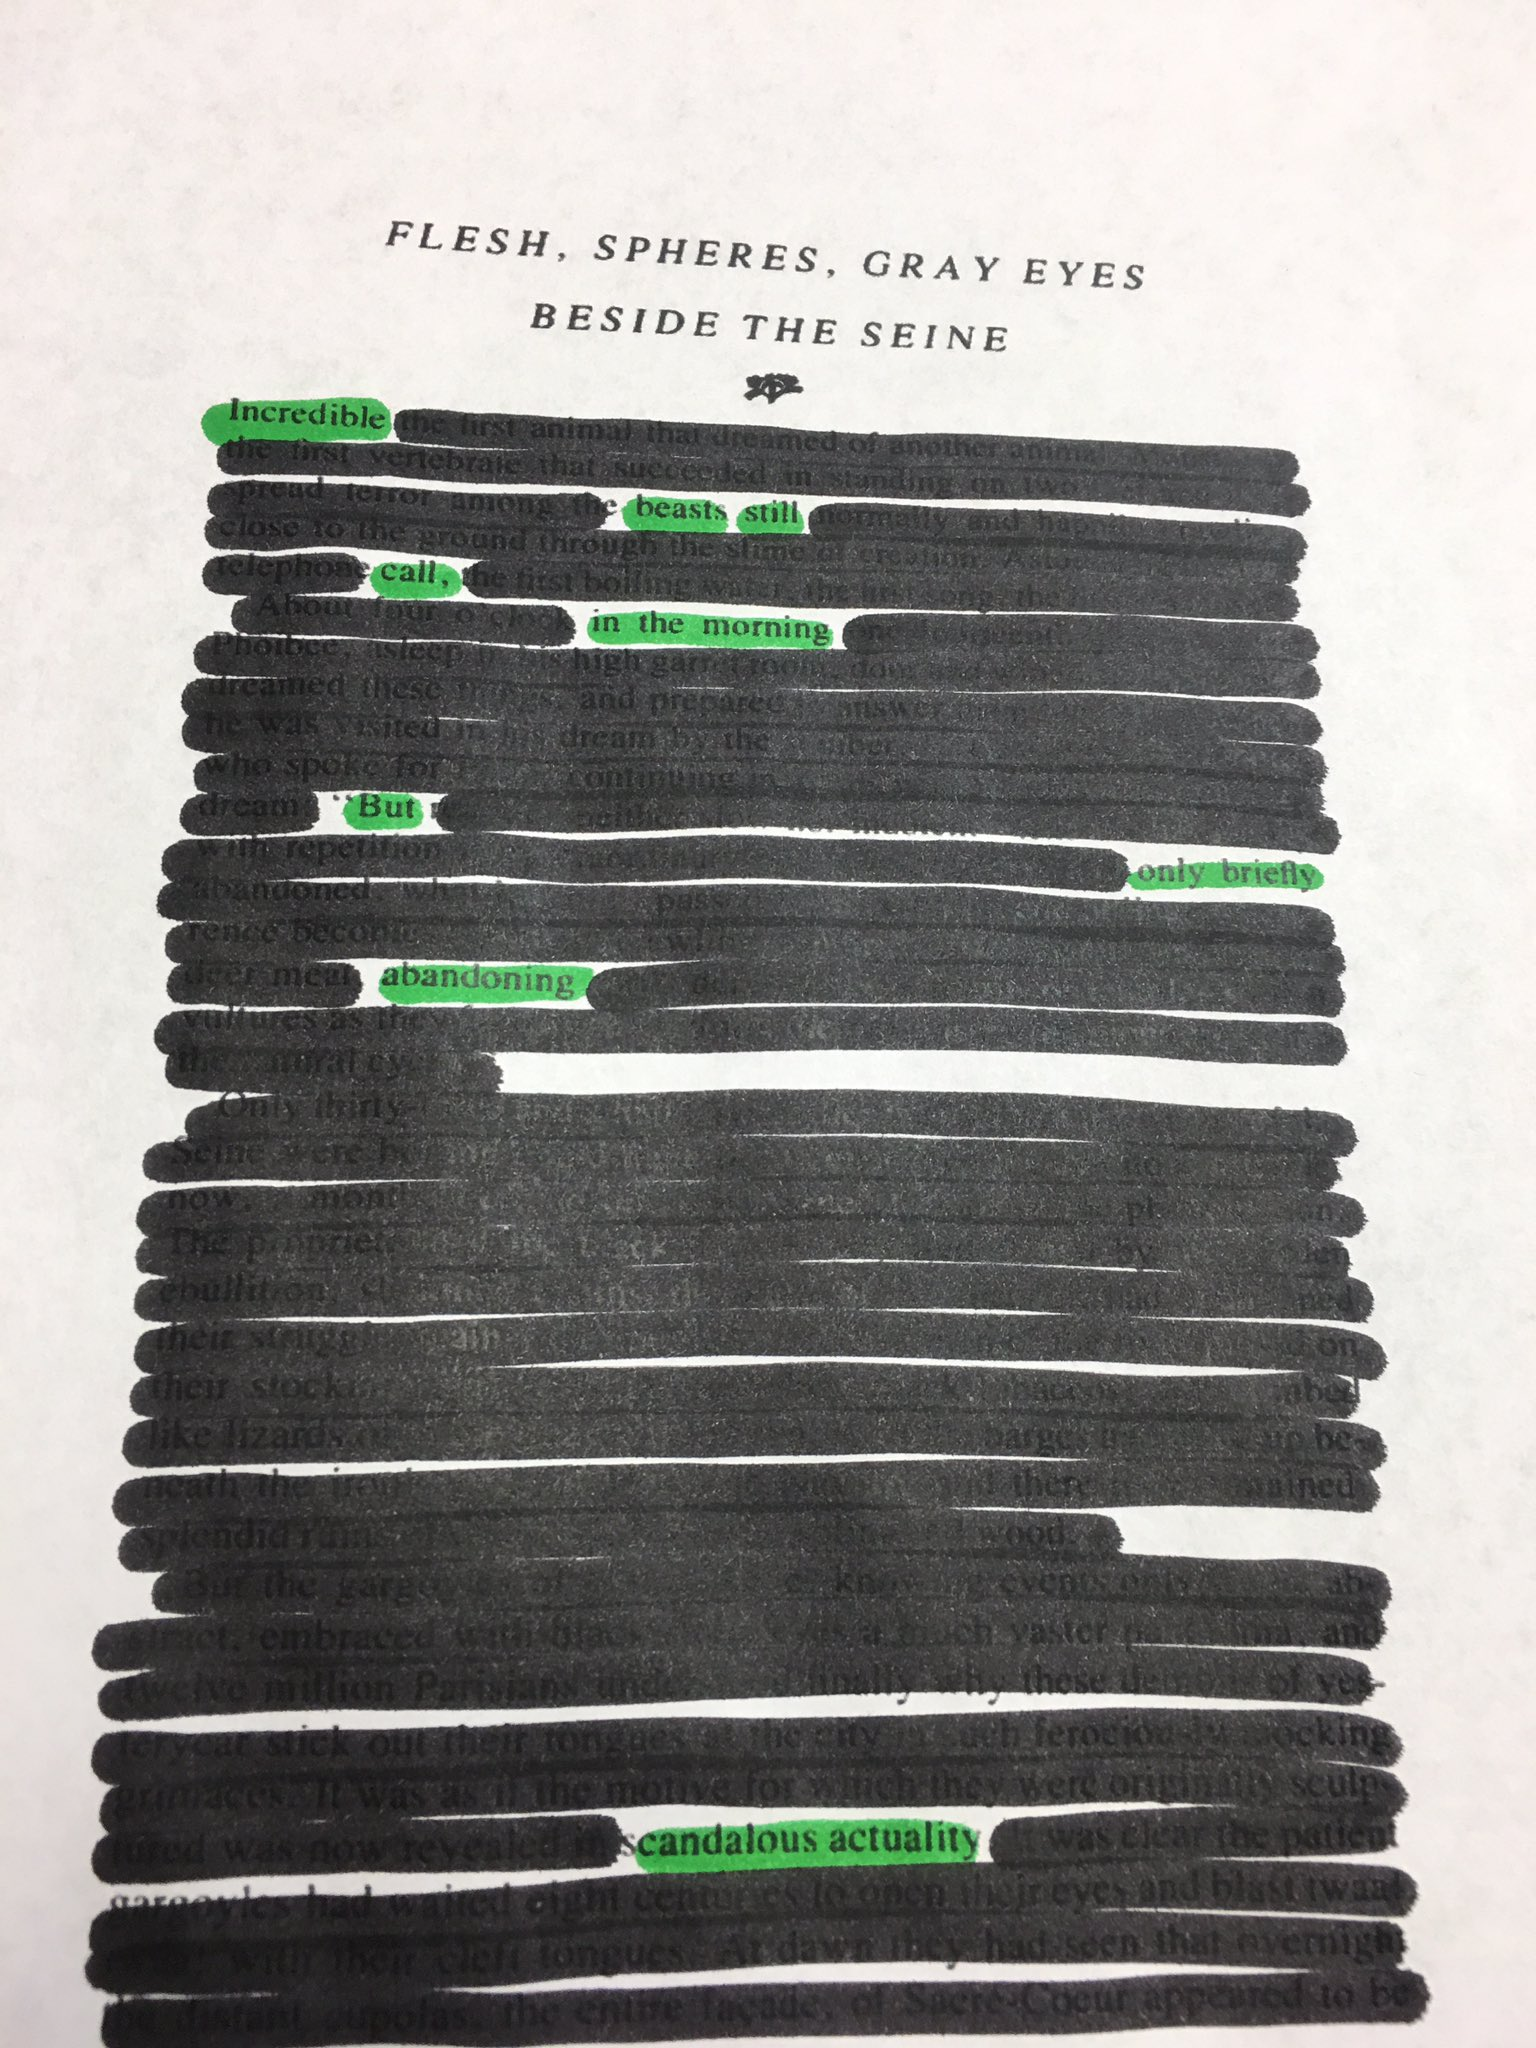 @netnarr #blackoutpoetry #netnarr https://t.co/OvuNaED8rJ